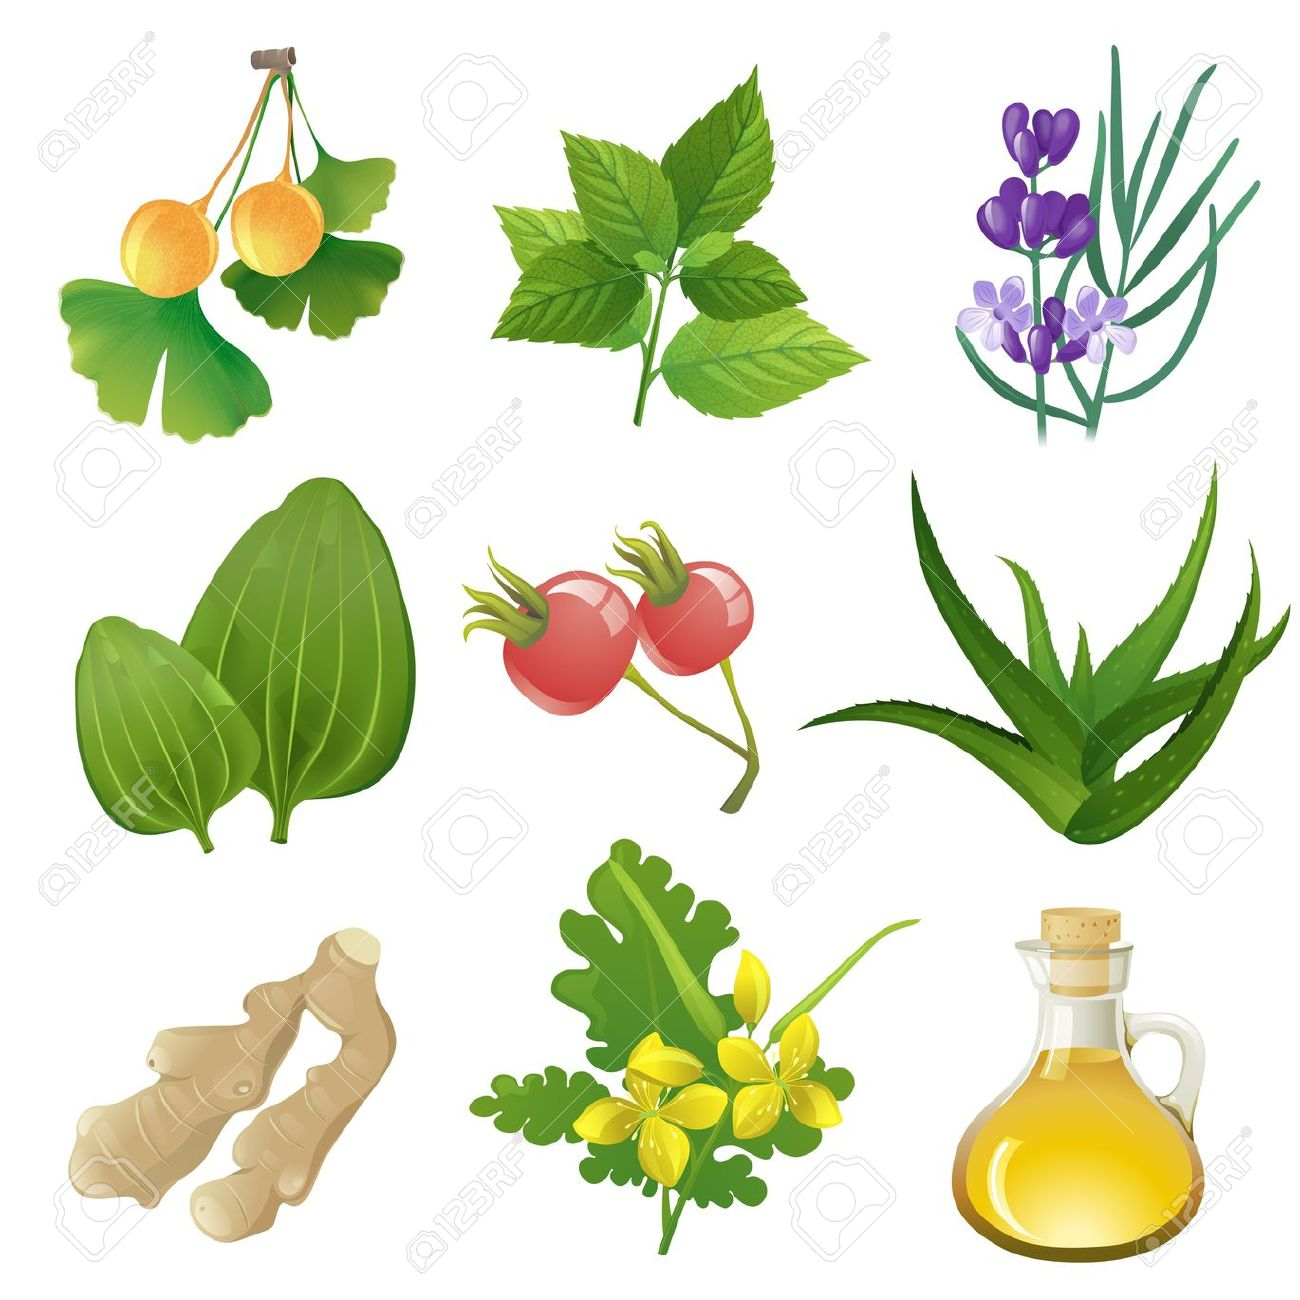 Plants Icons For Herbal Medicine Royalty Free Cliparts, Vectors.